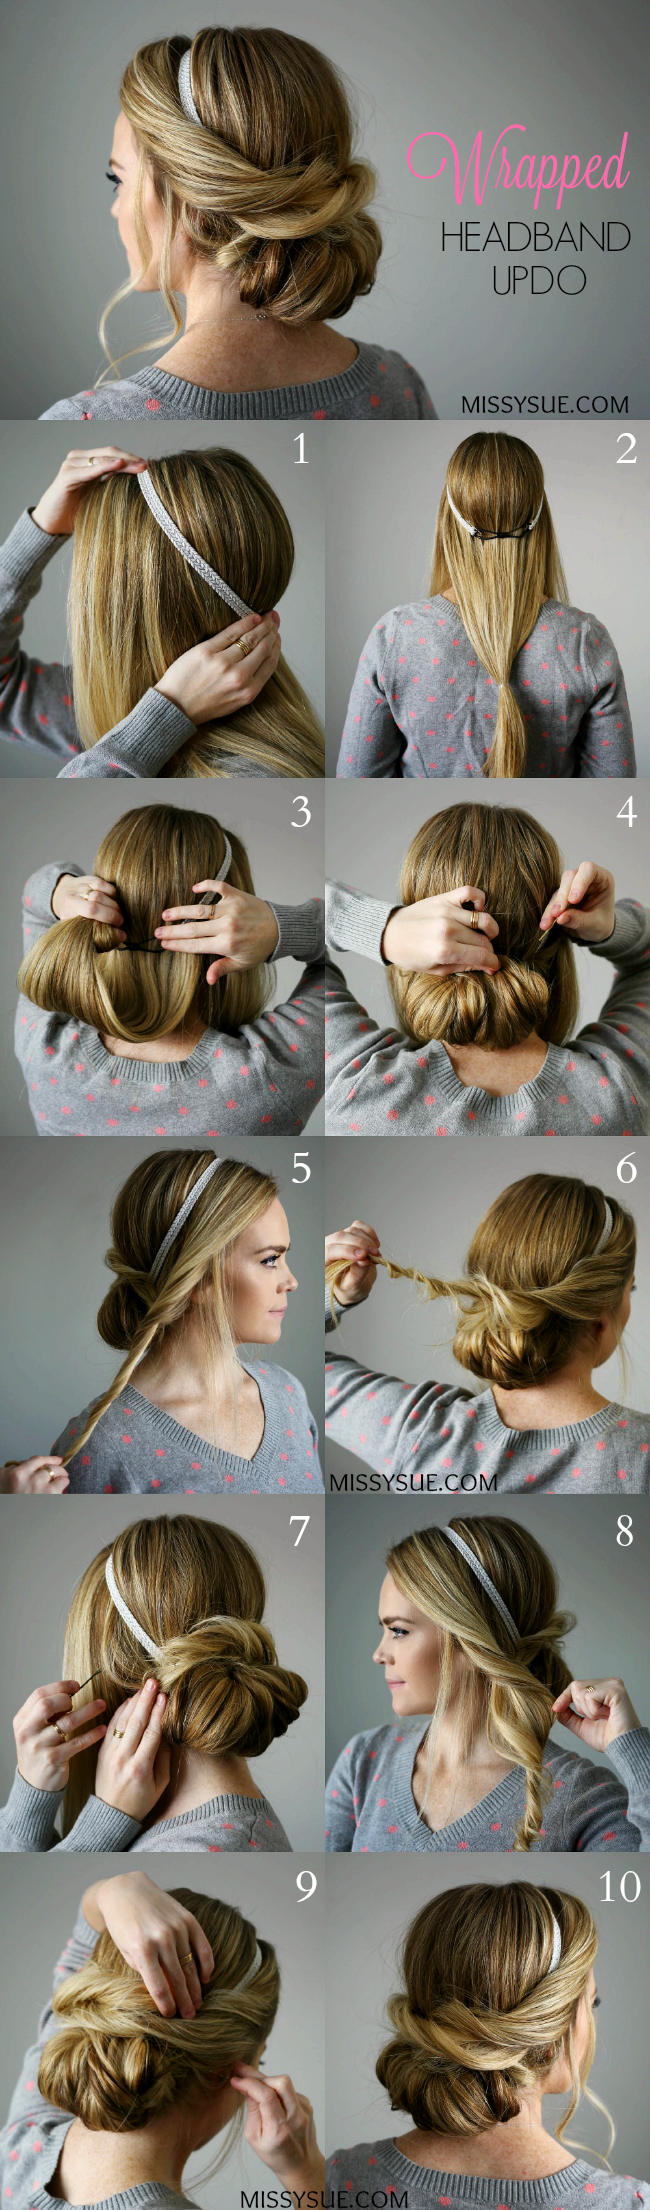 Wrapped headband updo check out tutorials for amazing and trending